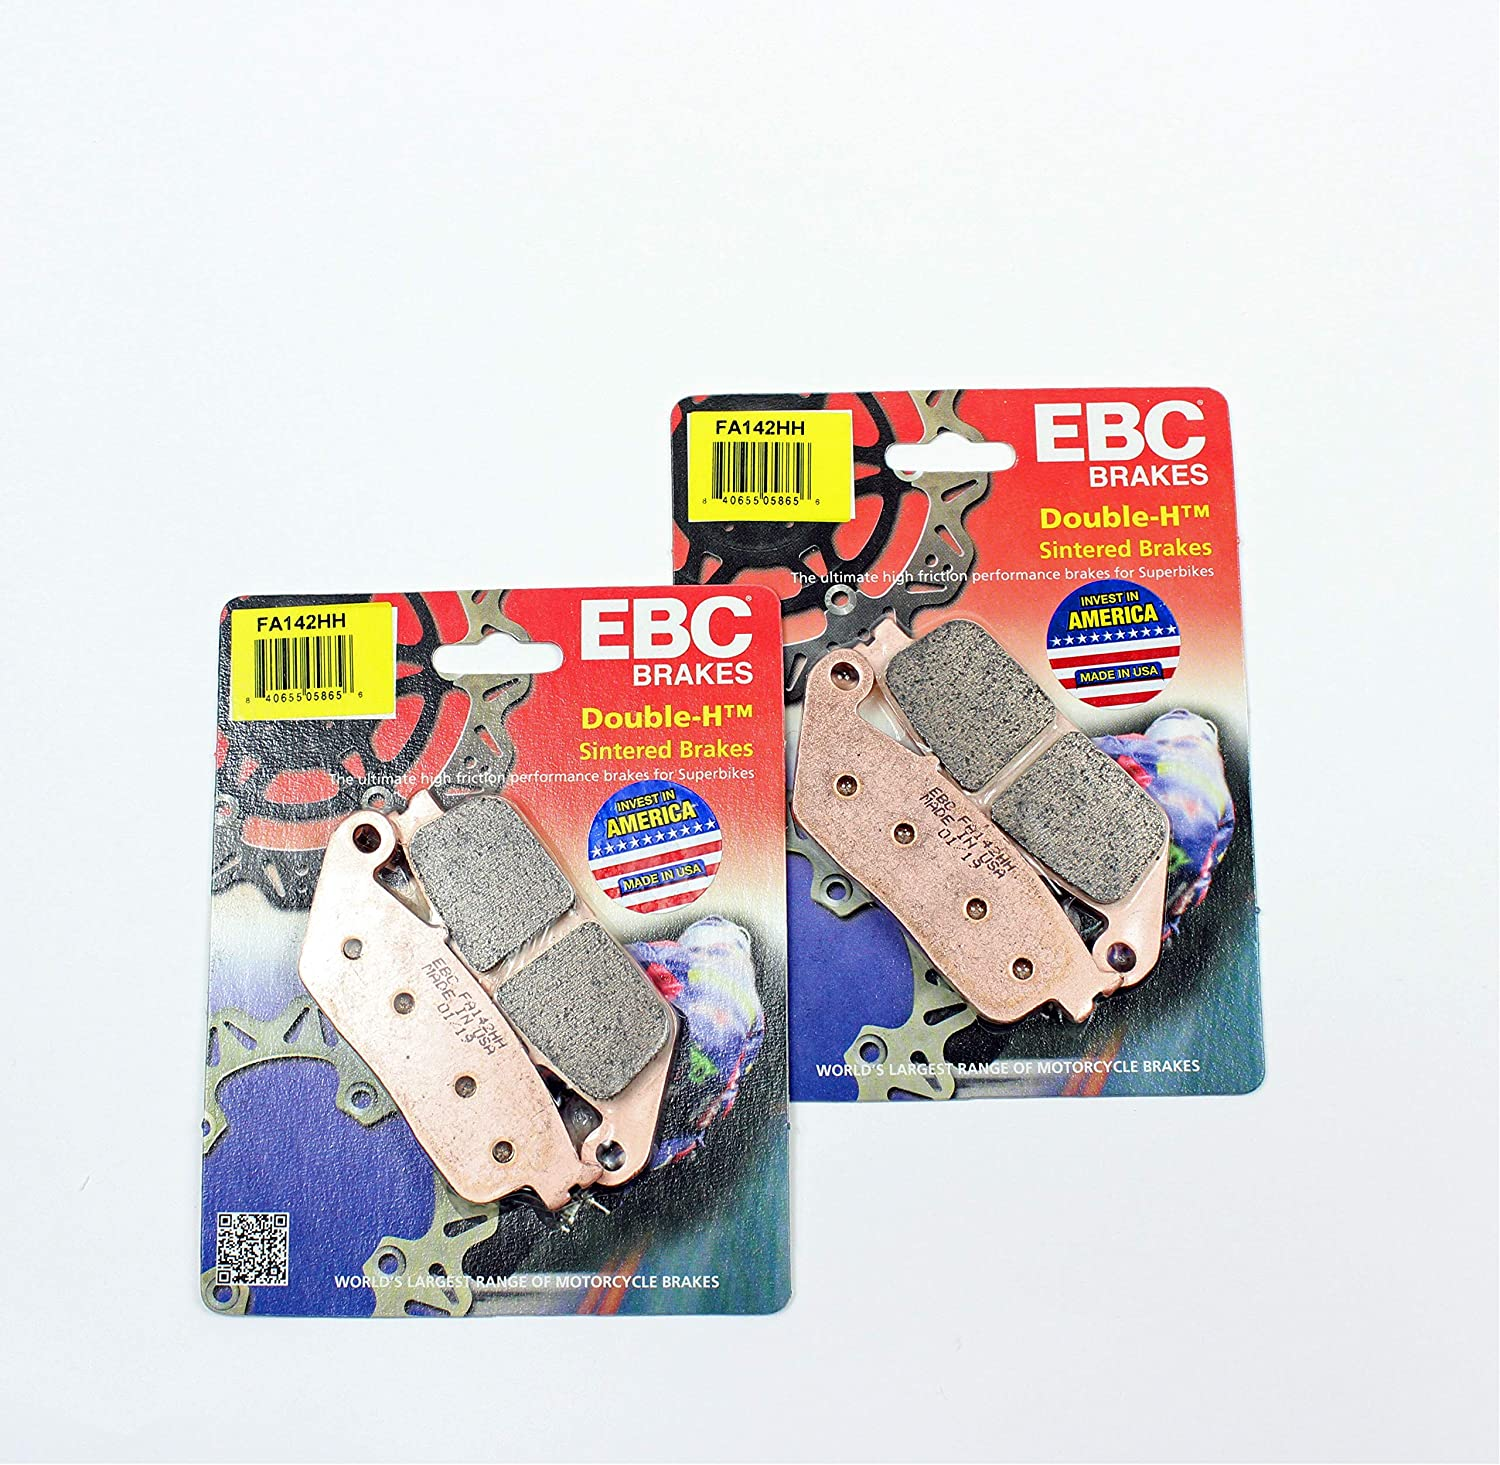 EBC Double-H Sintered Metal Brake Pads FA142HH 2 Packs - Enough for 2 Rotors EBC Brakes